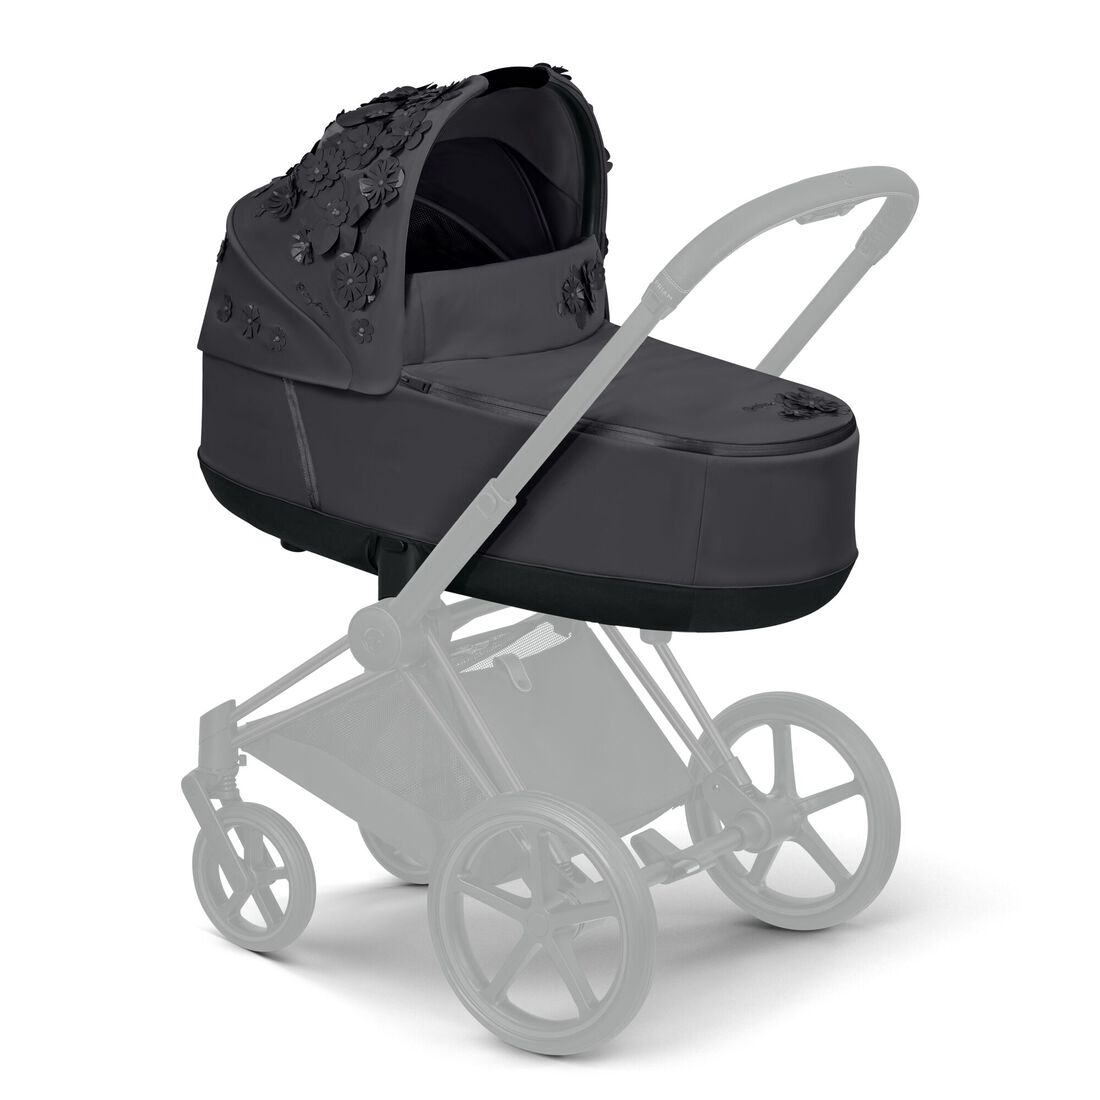 CYBEX Priam Lux Carry Cot - Dream Grey in Dream Grey large image number 5